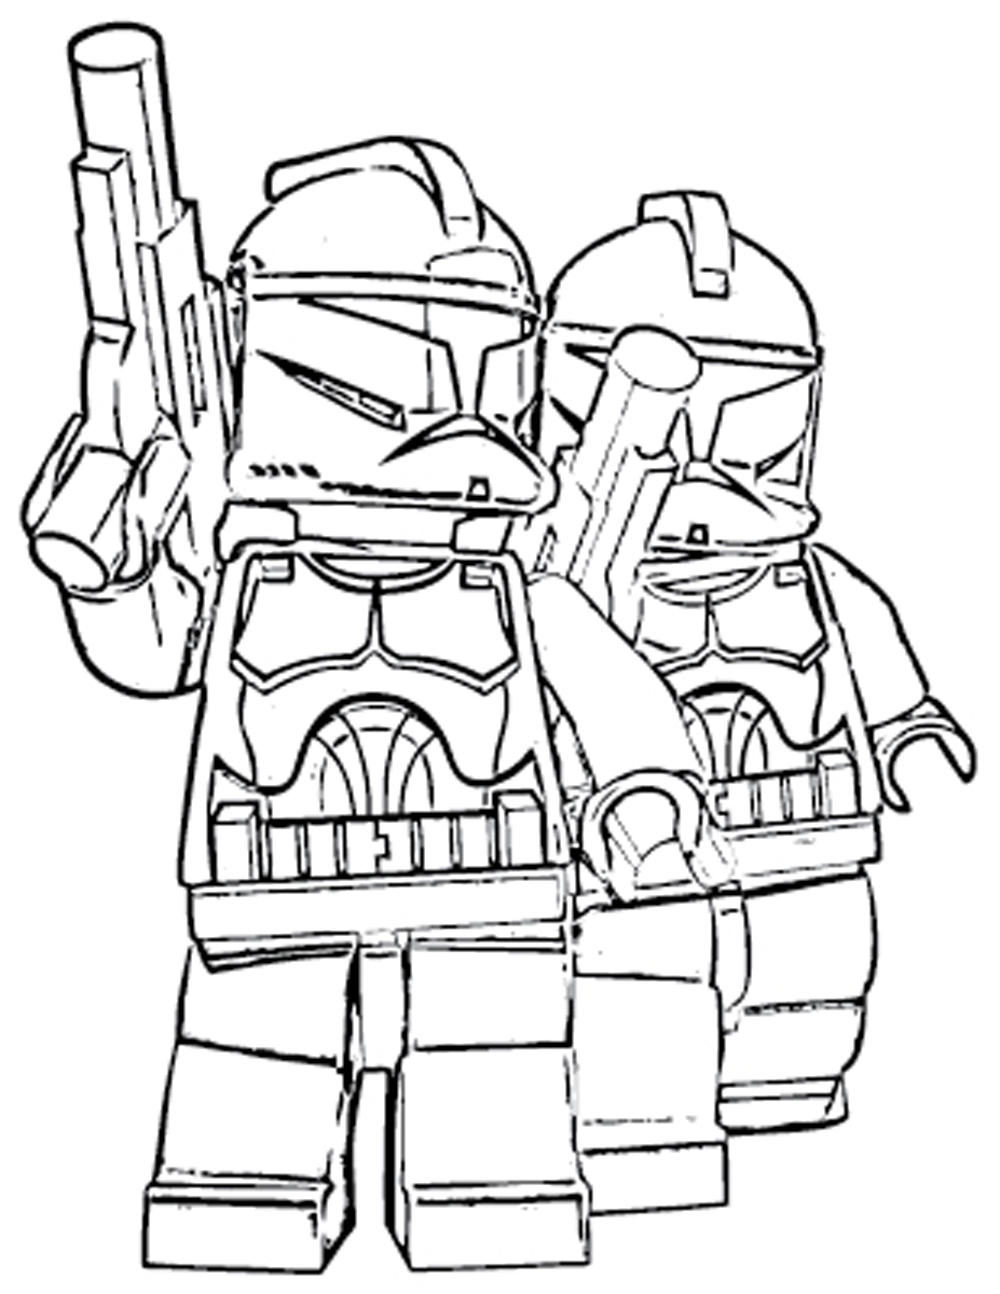 lego minifigures coloring pages - lego star wars minifigures coloring pages